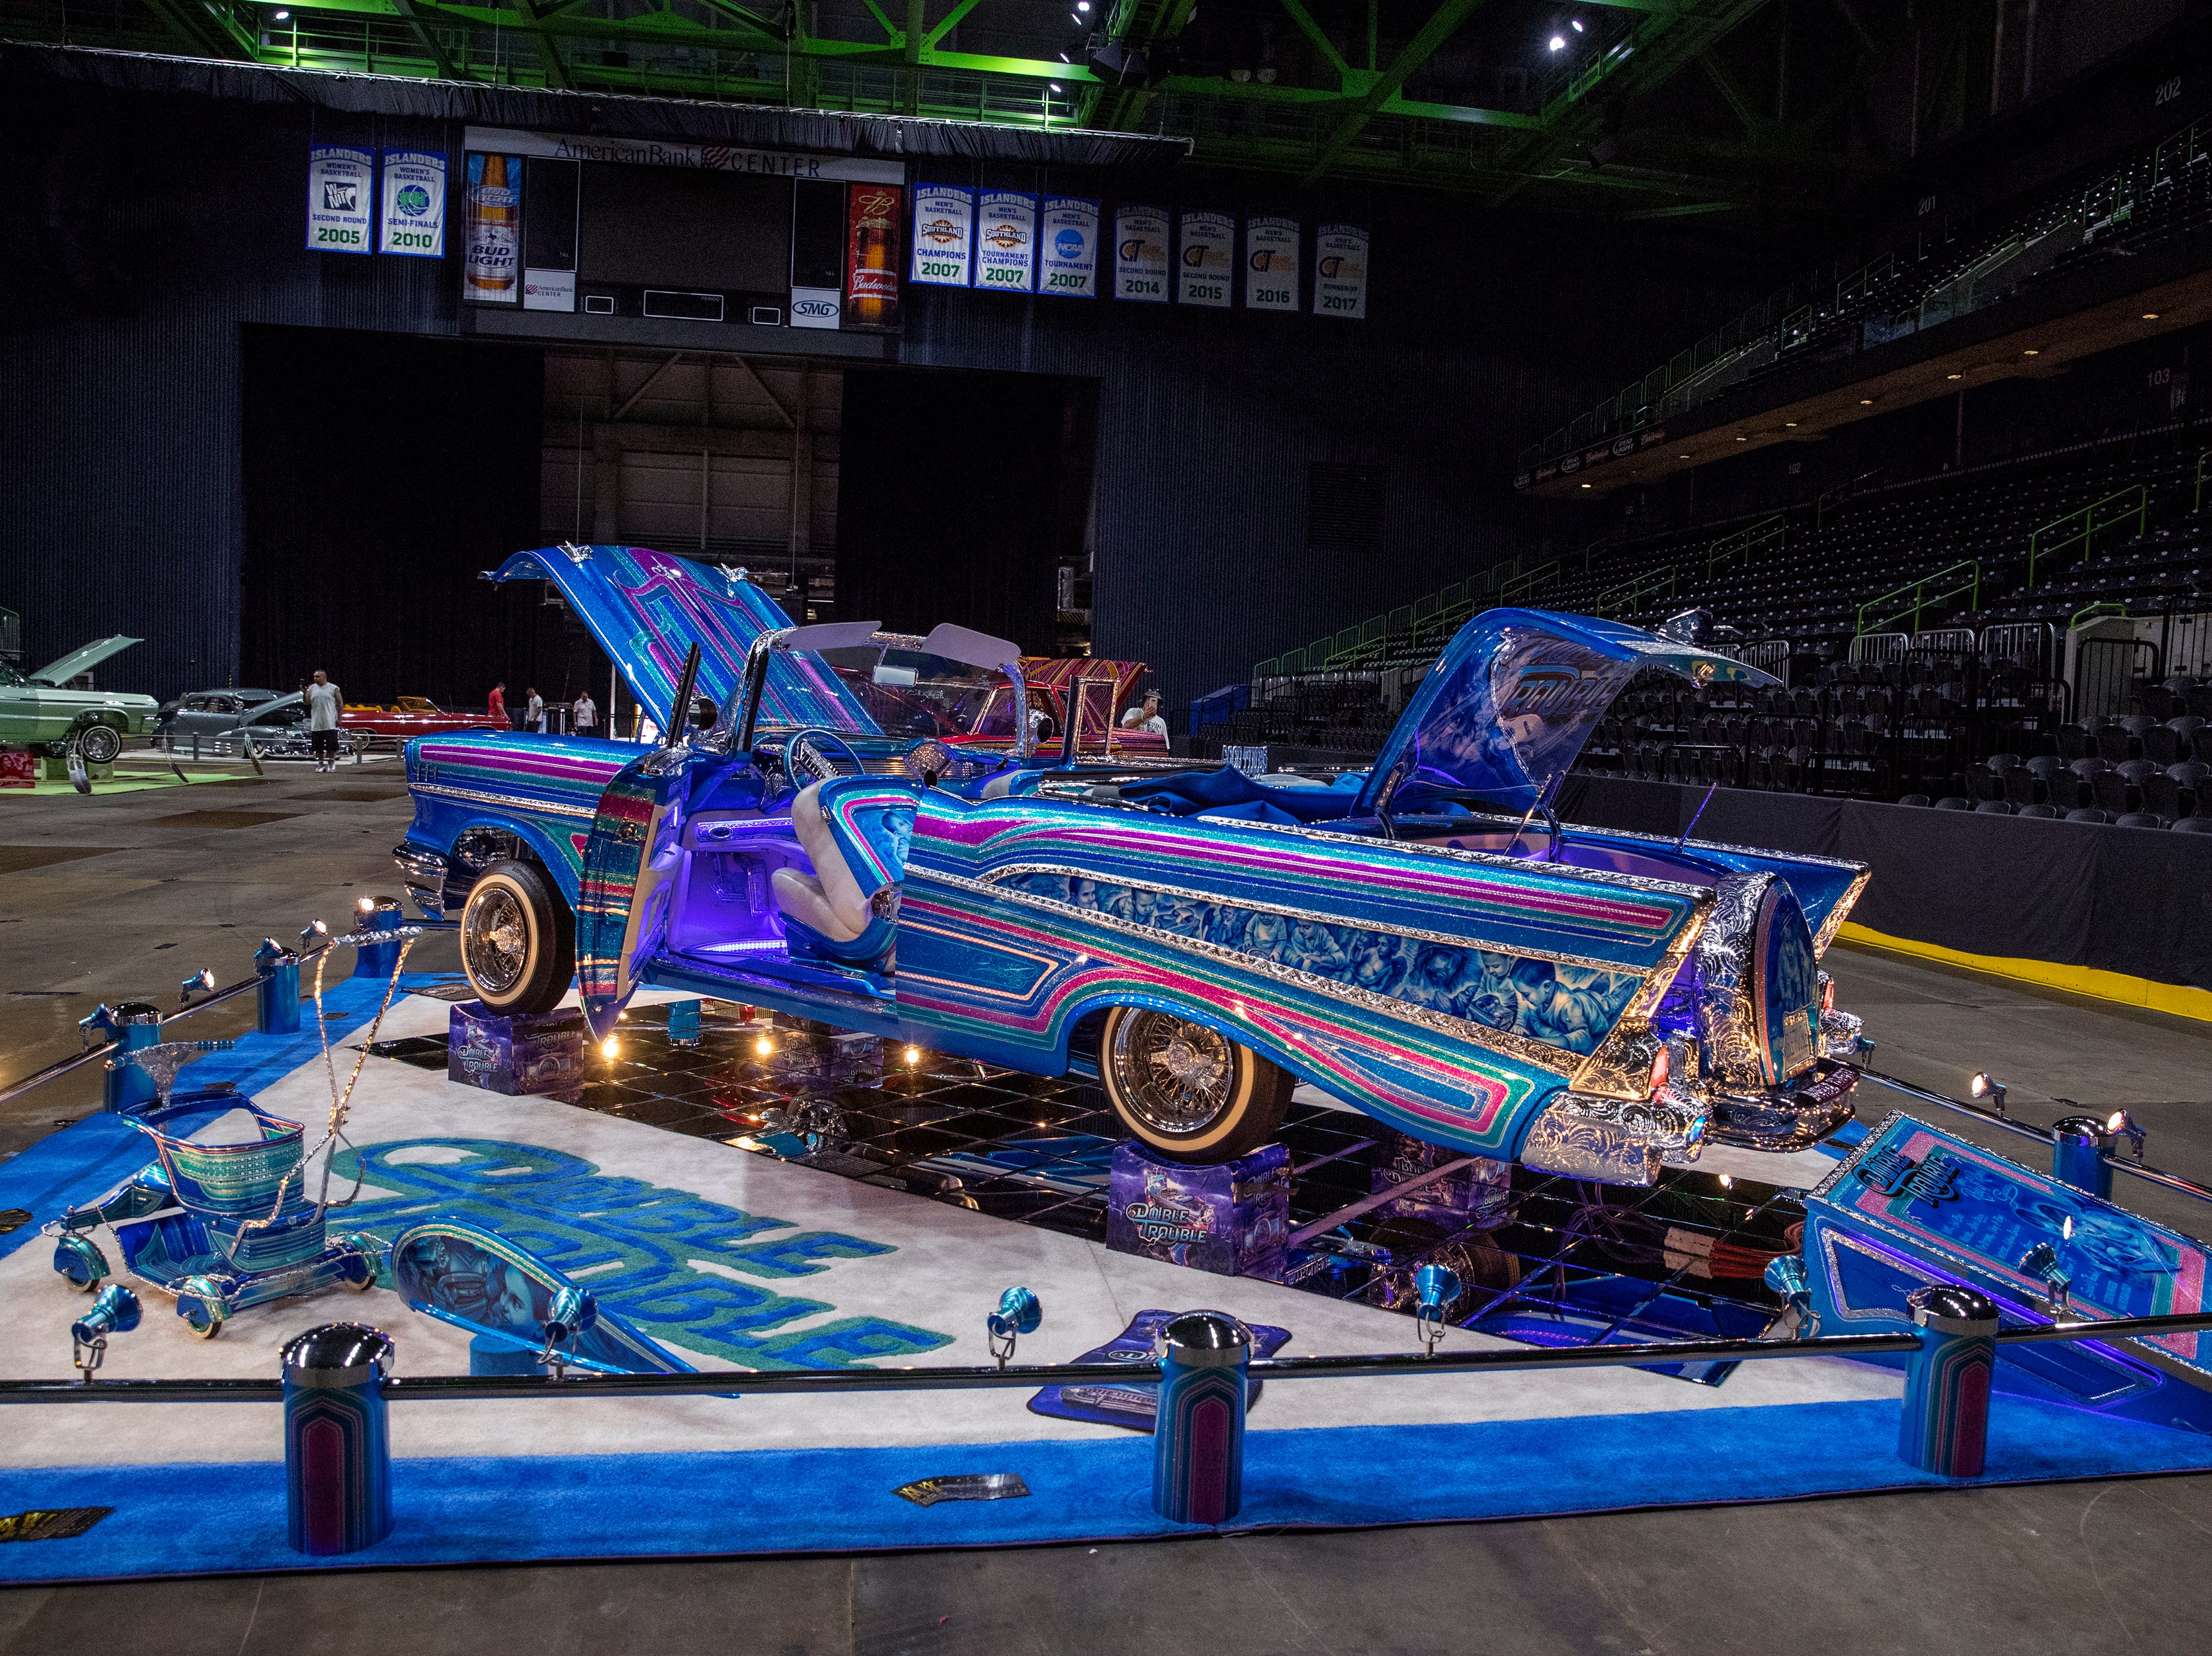 Low riders like this one on display inside the American Bank Center before the start of Fiesta de la Flor on Friday, April 12, 2019, in Corpus Christi, Texas.